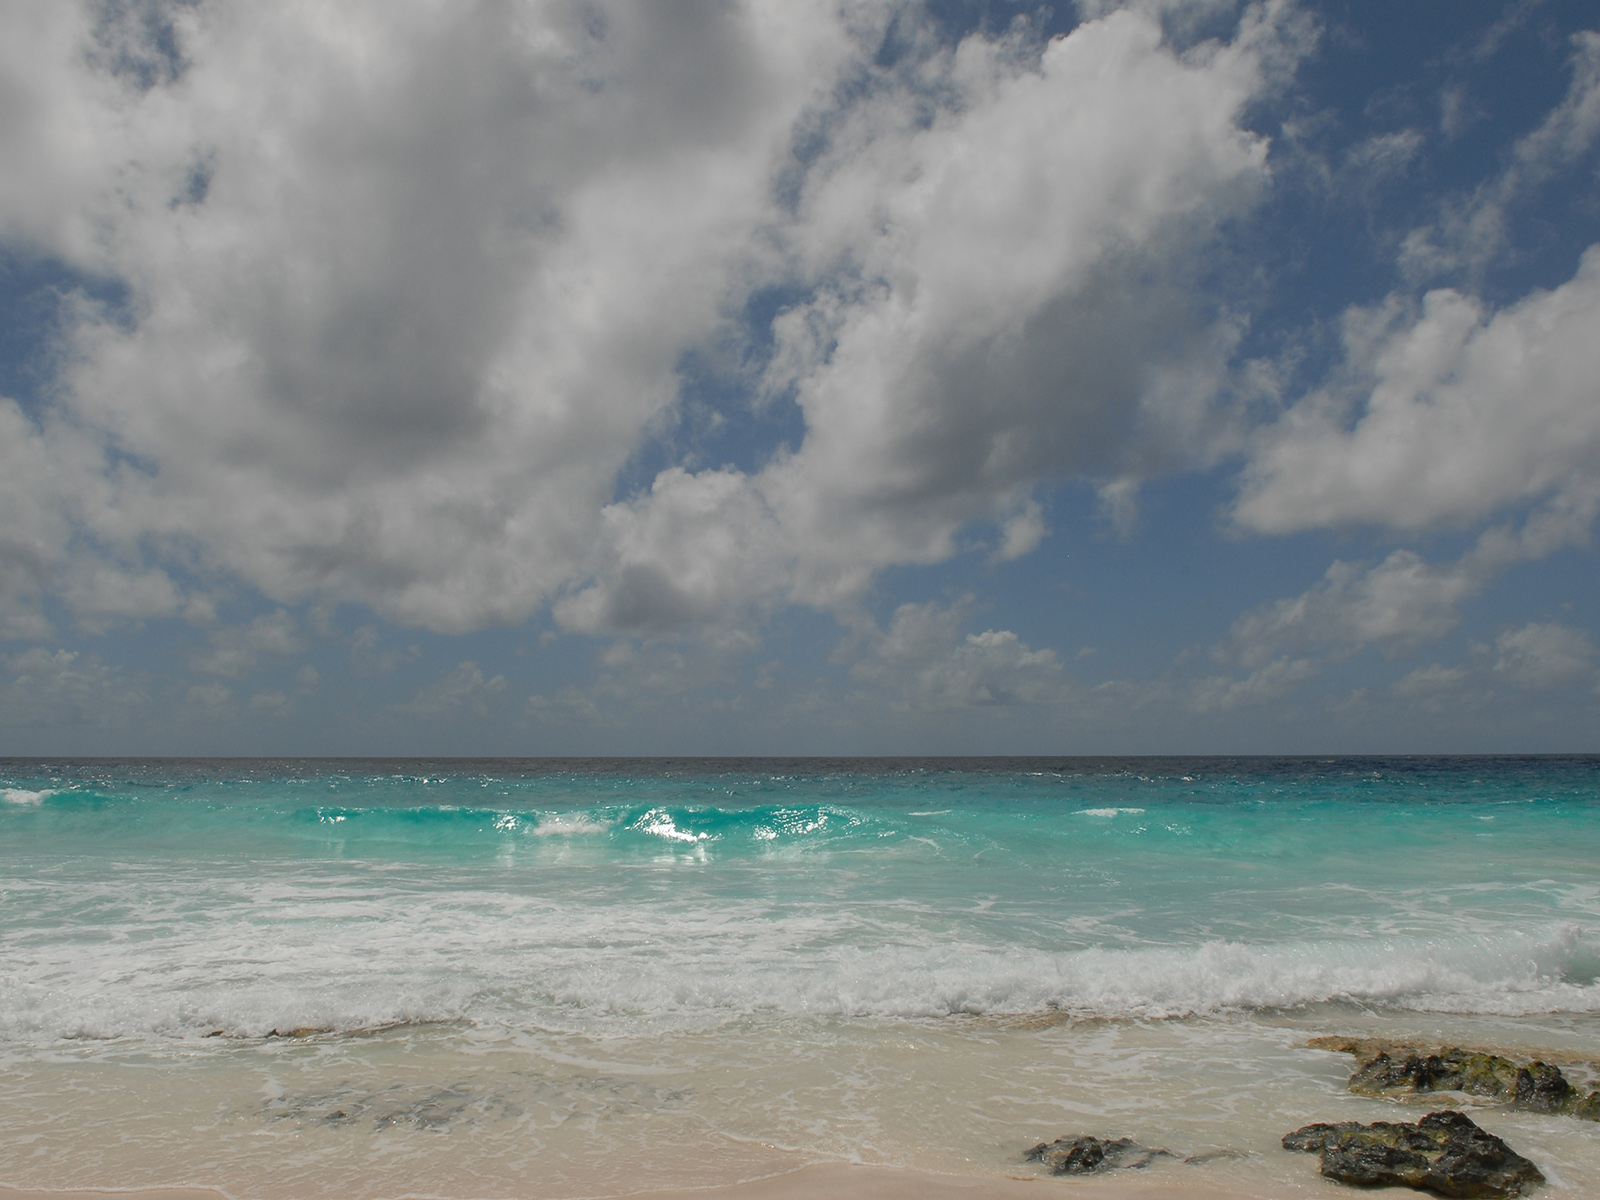 the Indian Ocean from the shores of Sister Island in the Seychelles